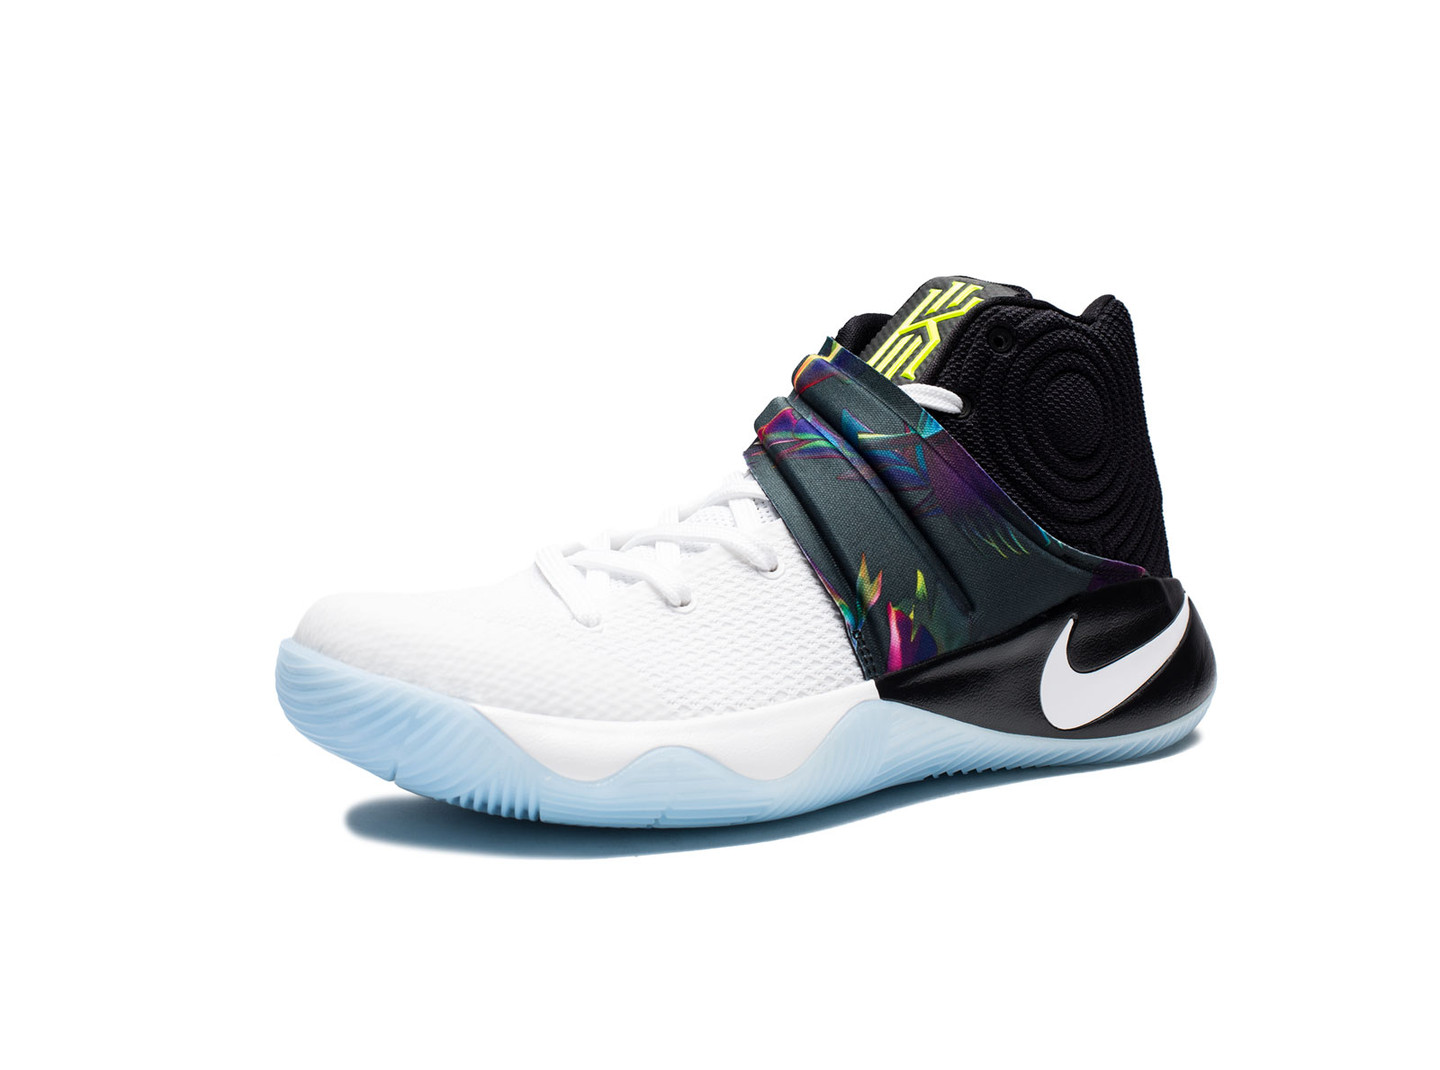 kyrie 2 2016 champs shoes